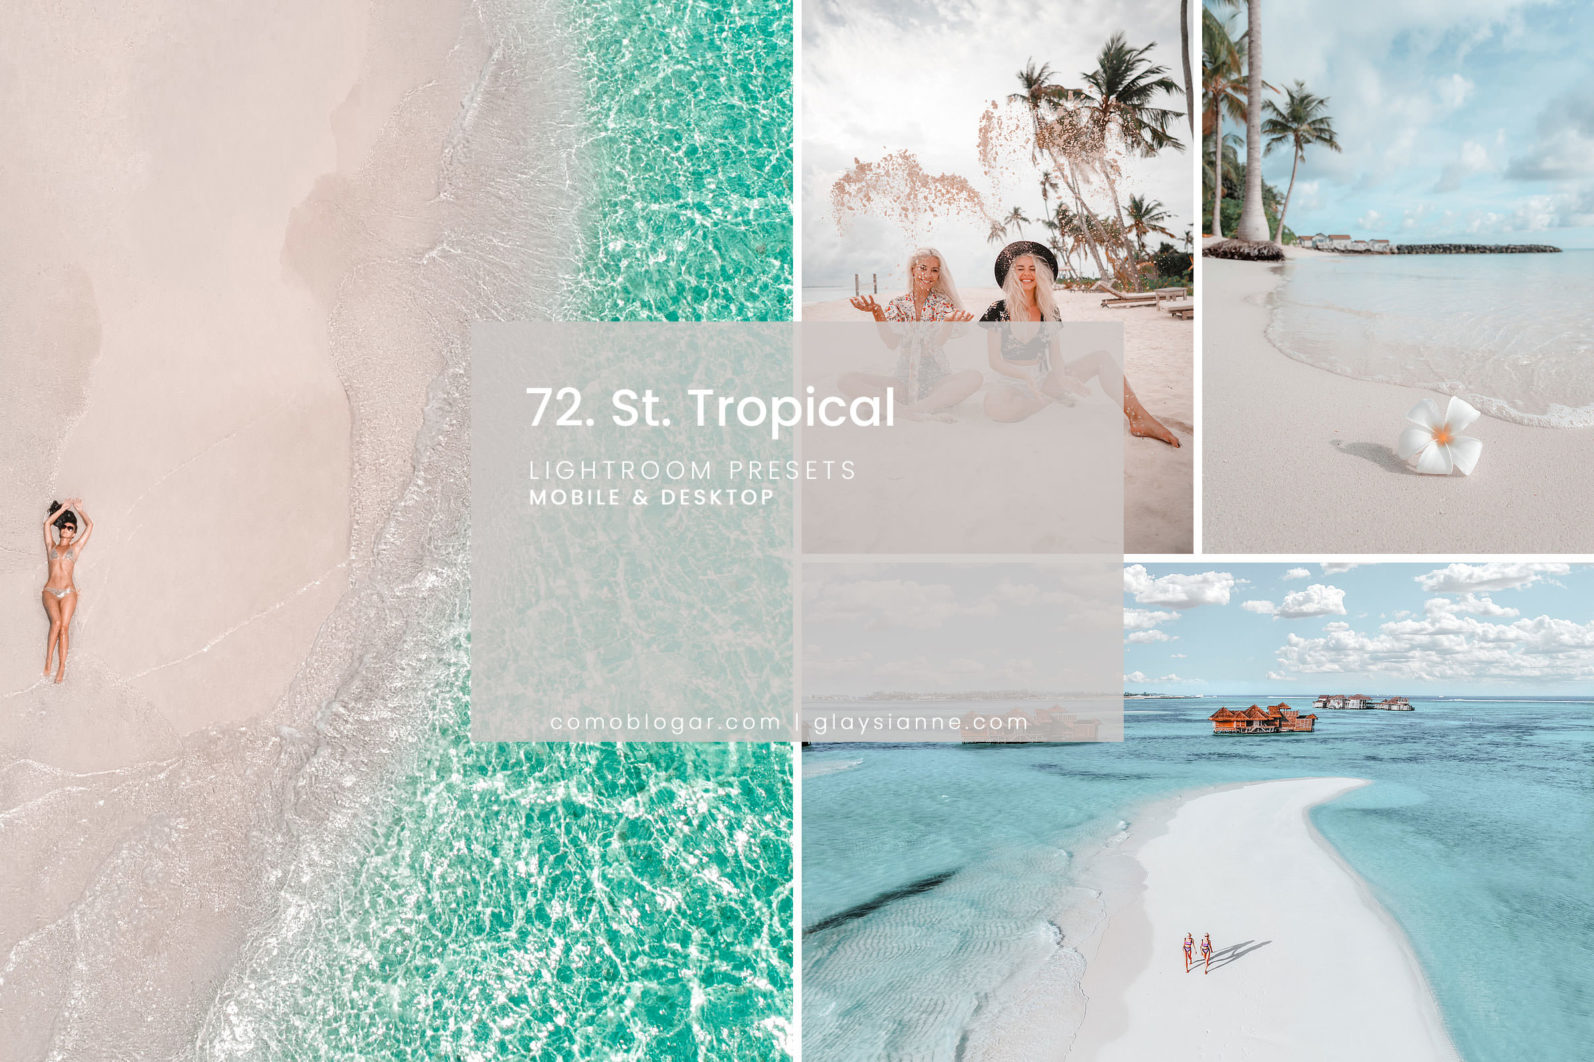 72. St. Tropical - 72.St Tropical 1 -